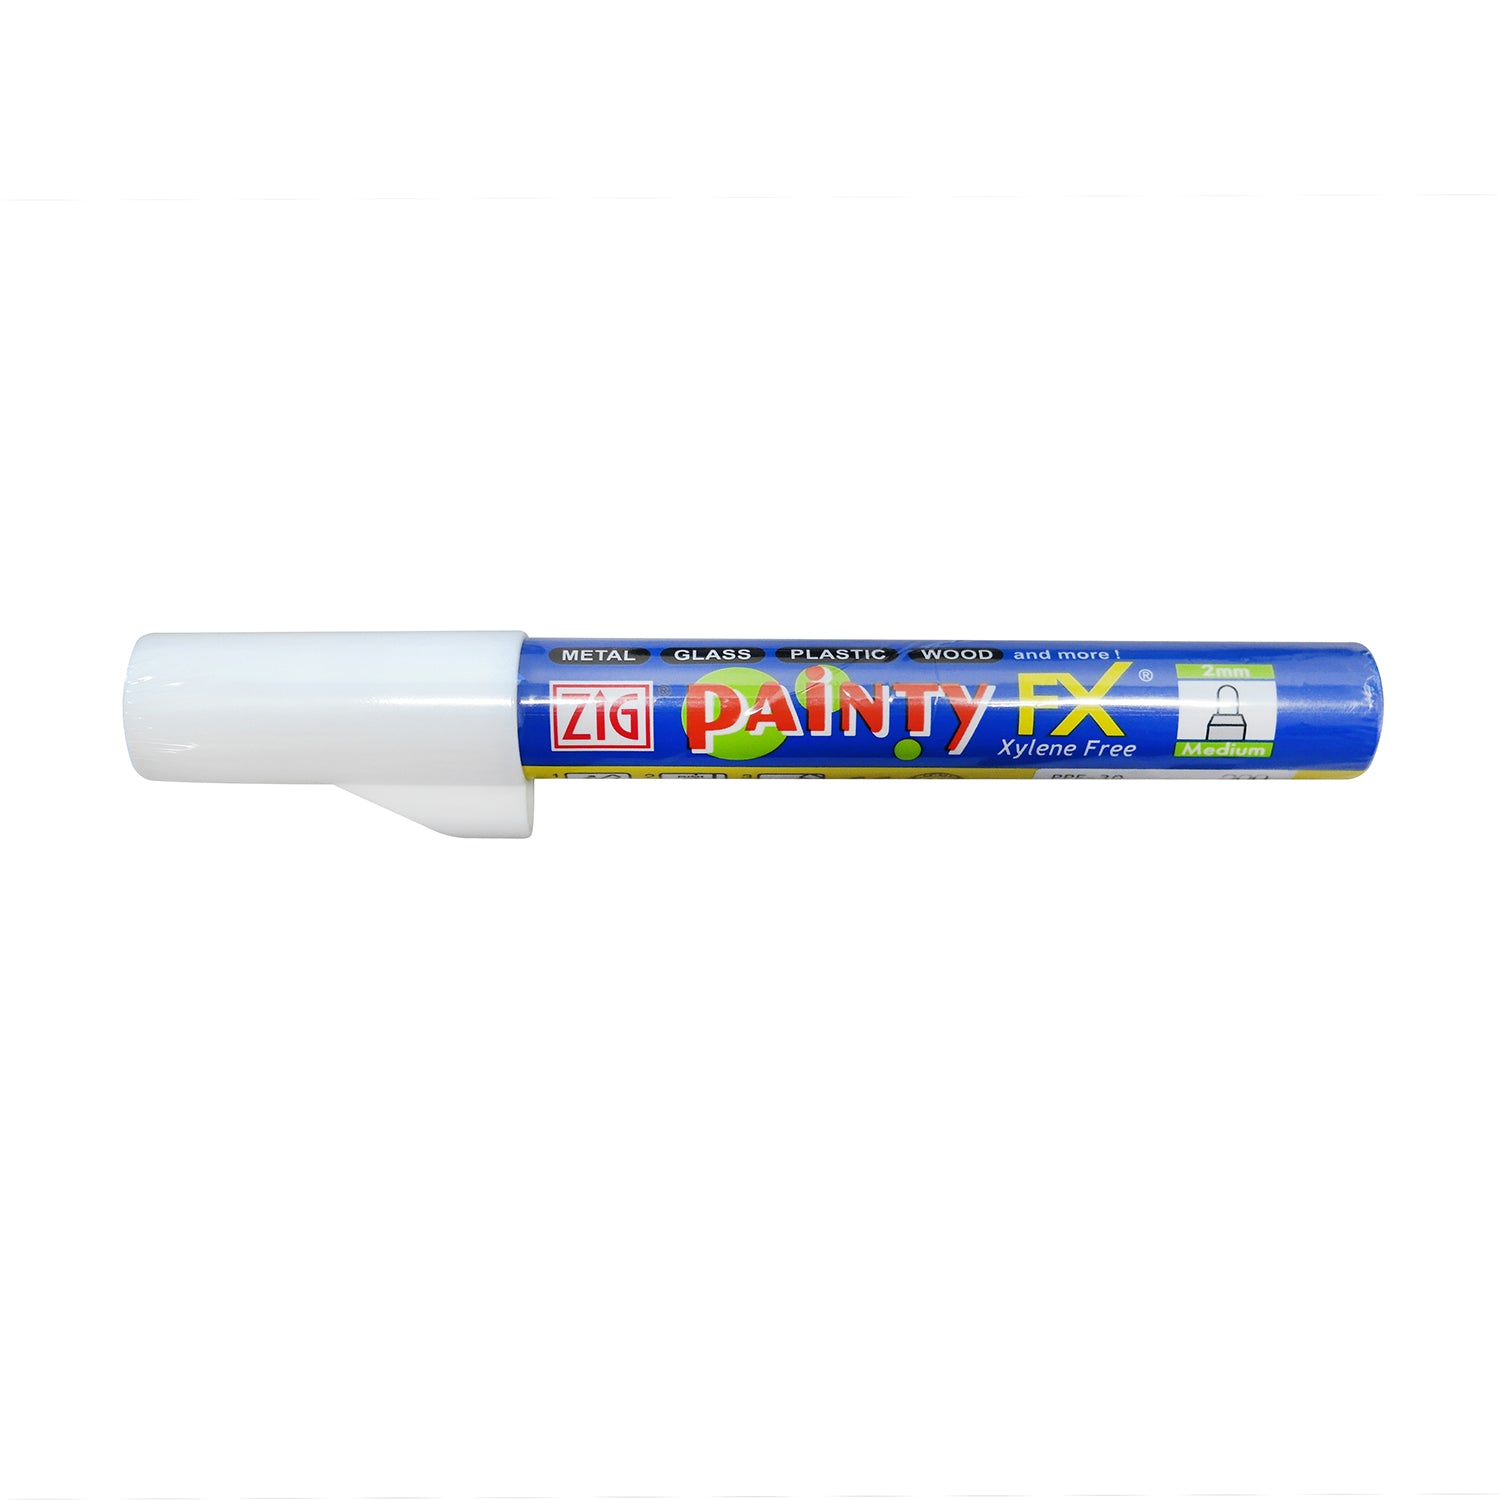 Zig Painty Fx Medium Tip Paint Markers Marking Supplies